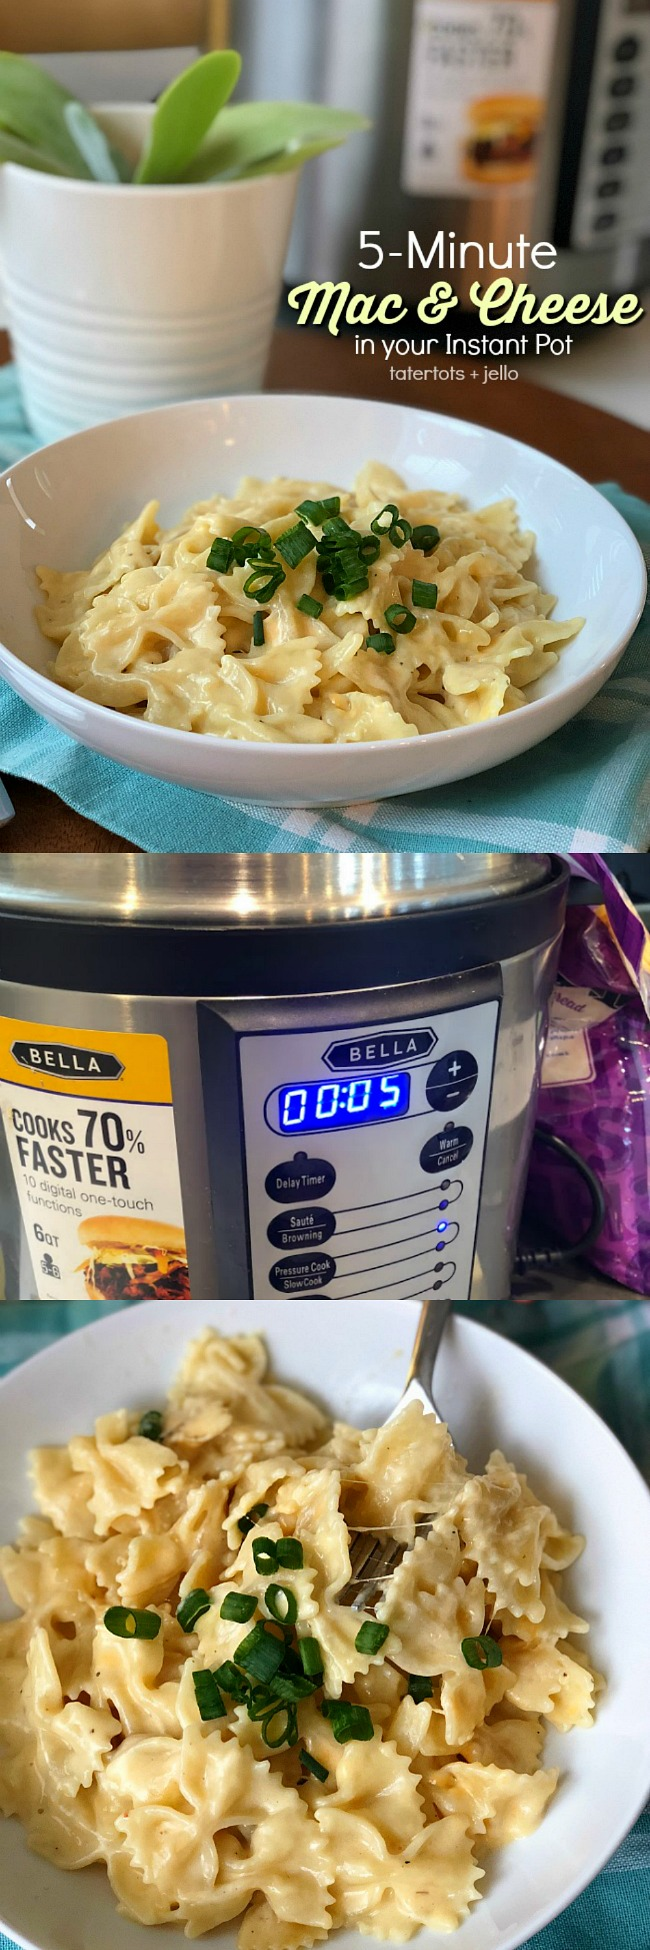 5-Minute Mac and Cheese in Your Instant Pot